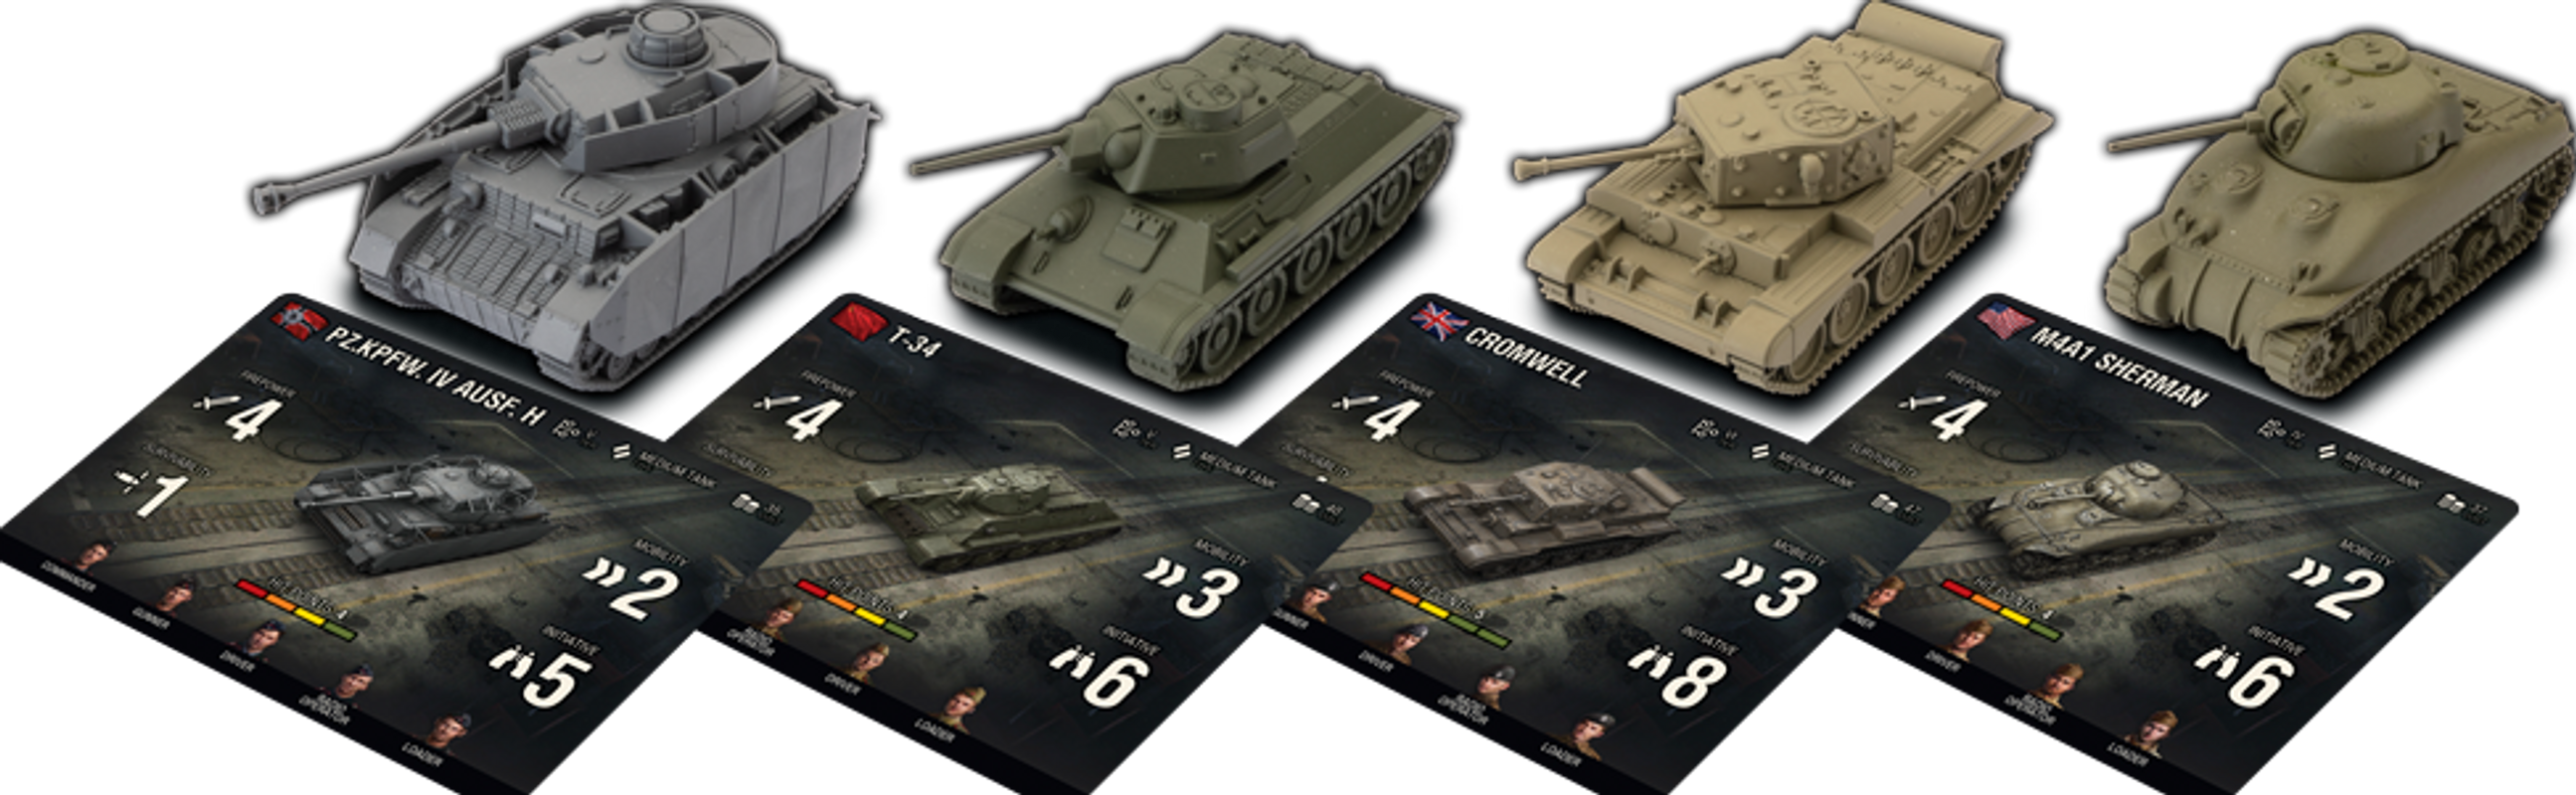 World of Tanks: Miniatures Game miniatures